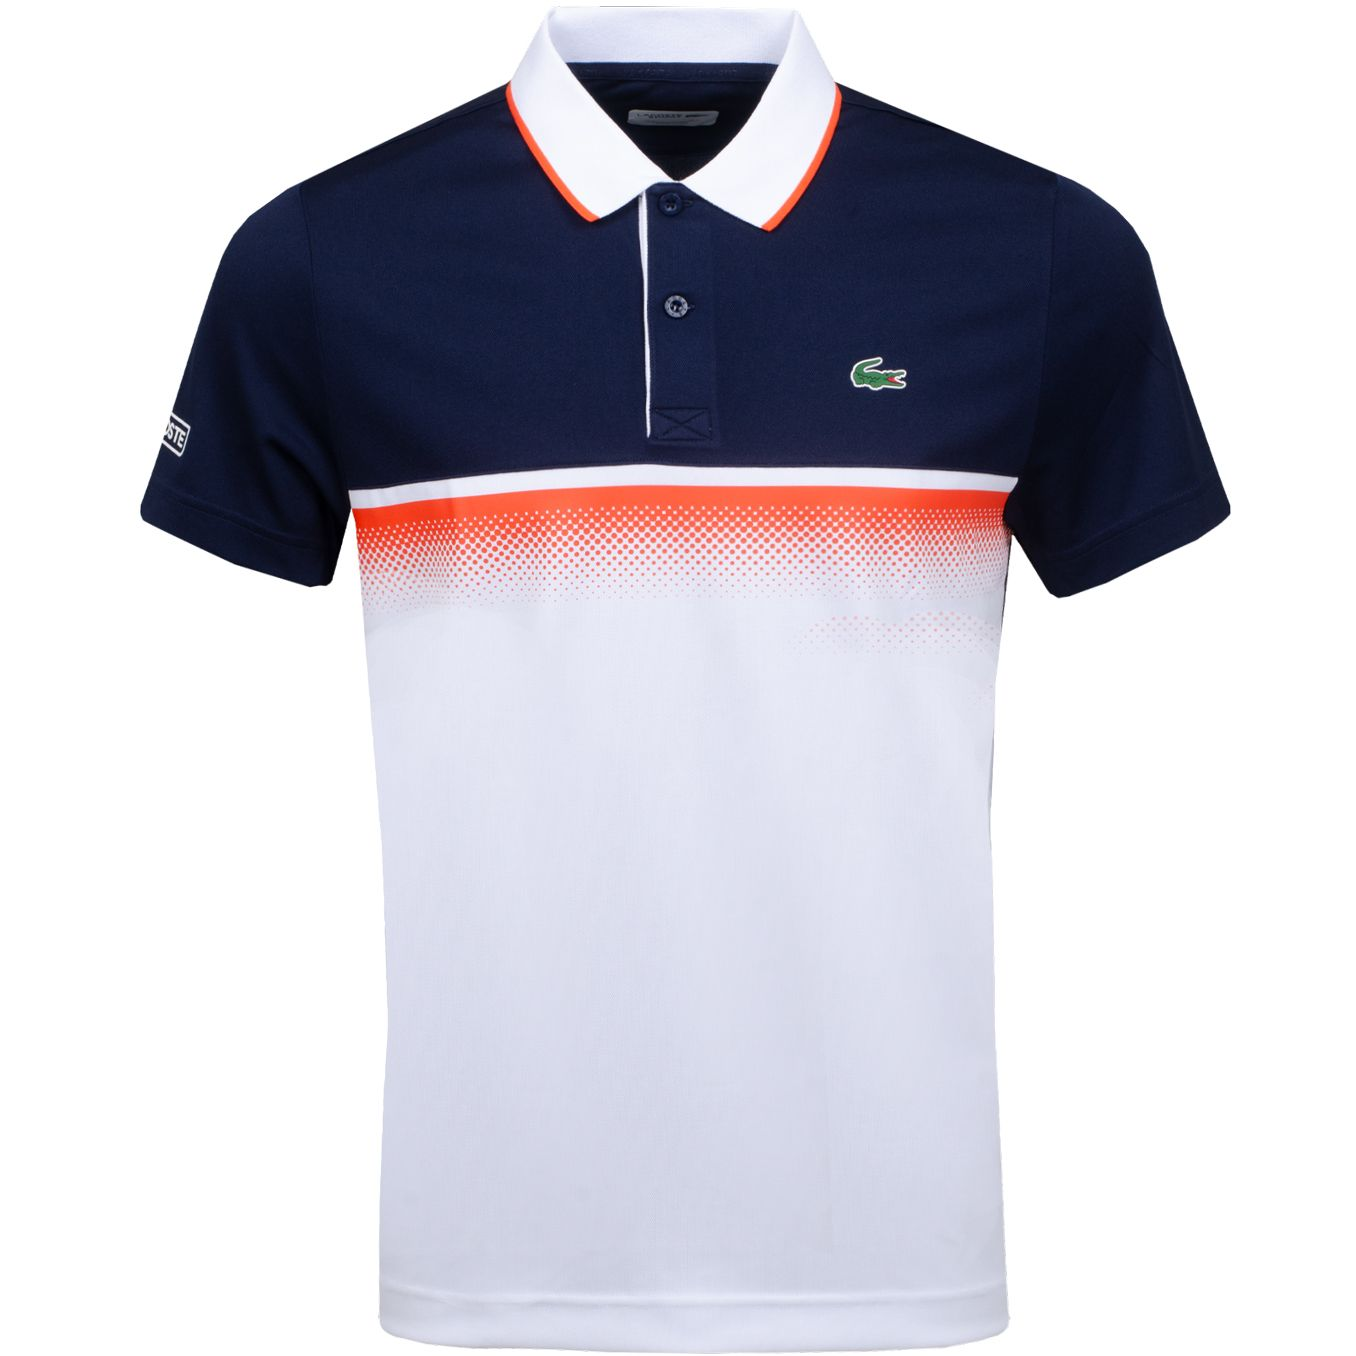 Lacoste Ultra Dry Block Stripe Polo Navy White Red Trendygolf Com Polo Shirt Design Lacoste Polo Shirts Lacoste